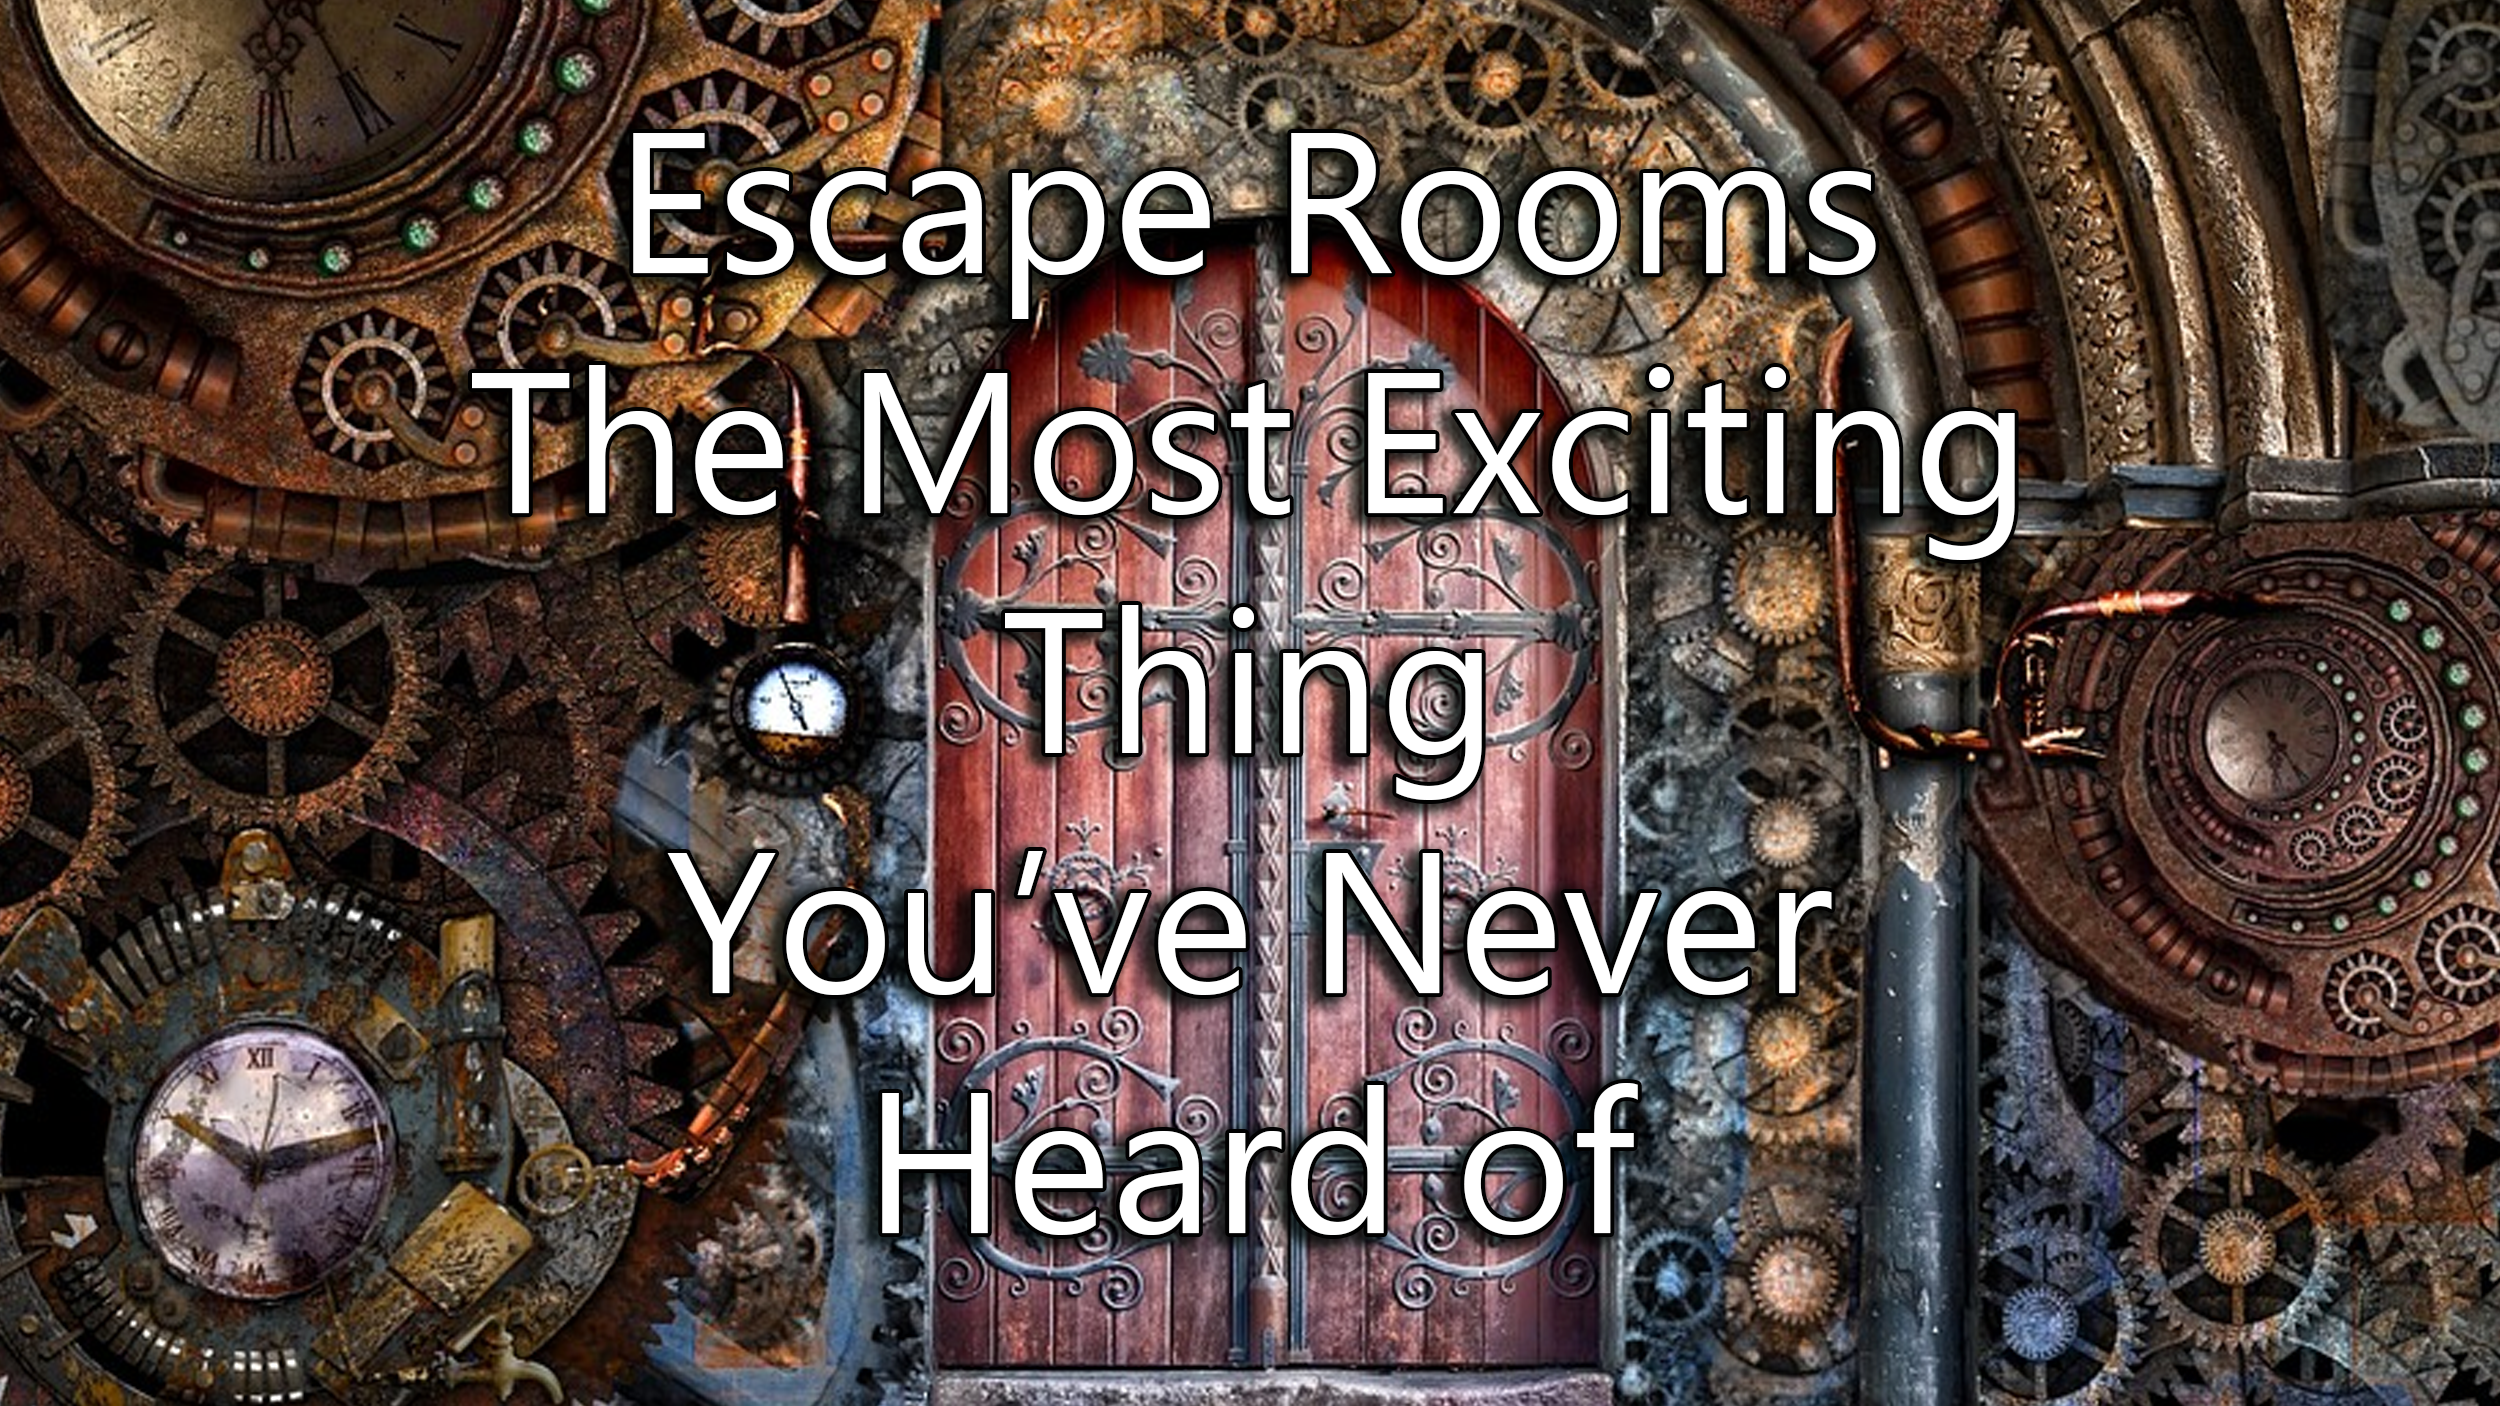 Escape Rooms are the Most Exciting Thing You've Never Heard of.